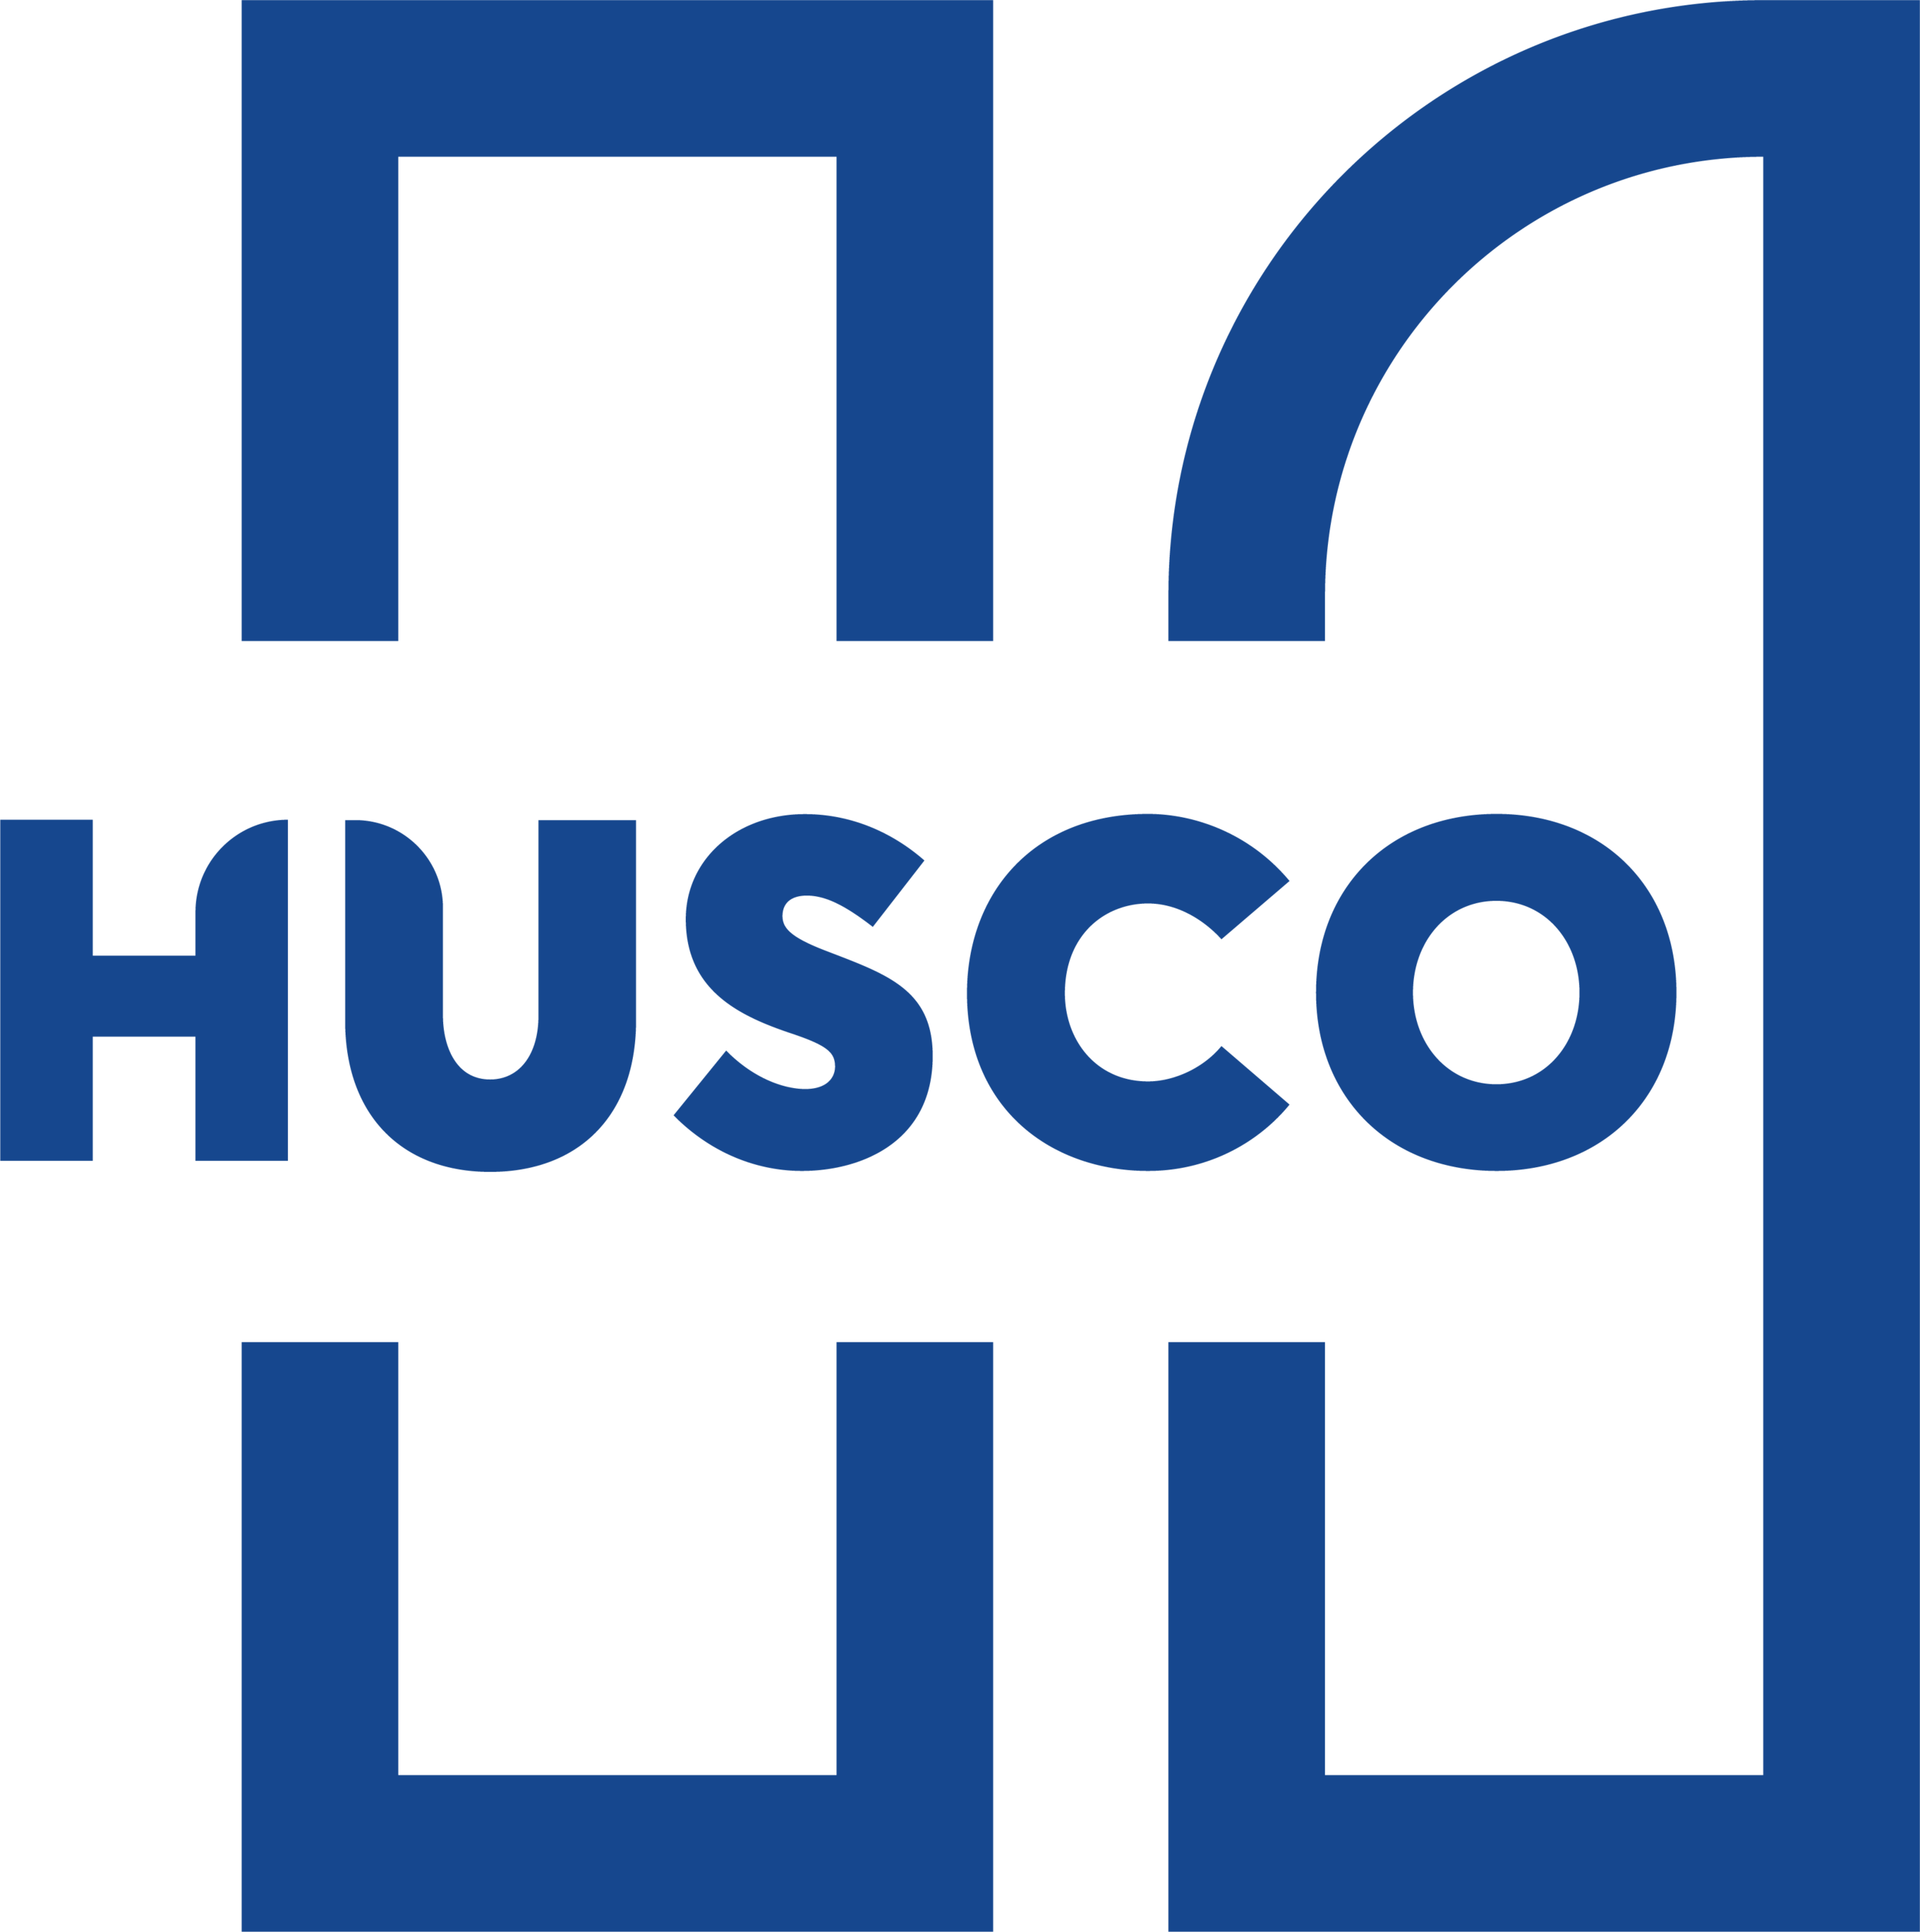 HUSCO-Primary.png